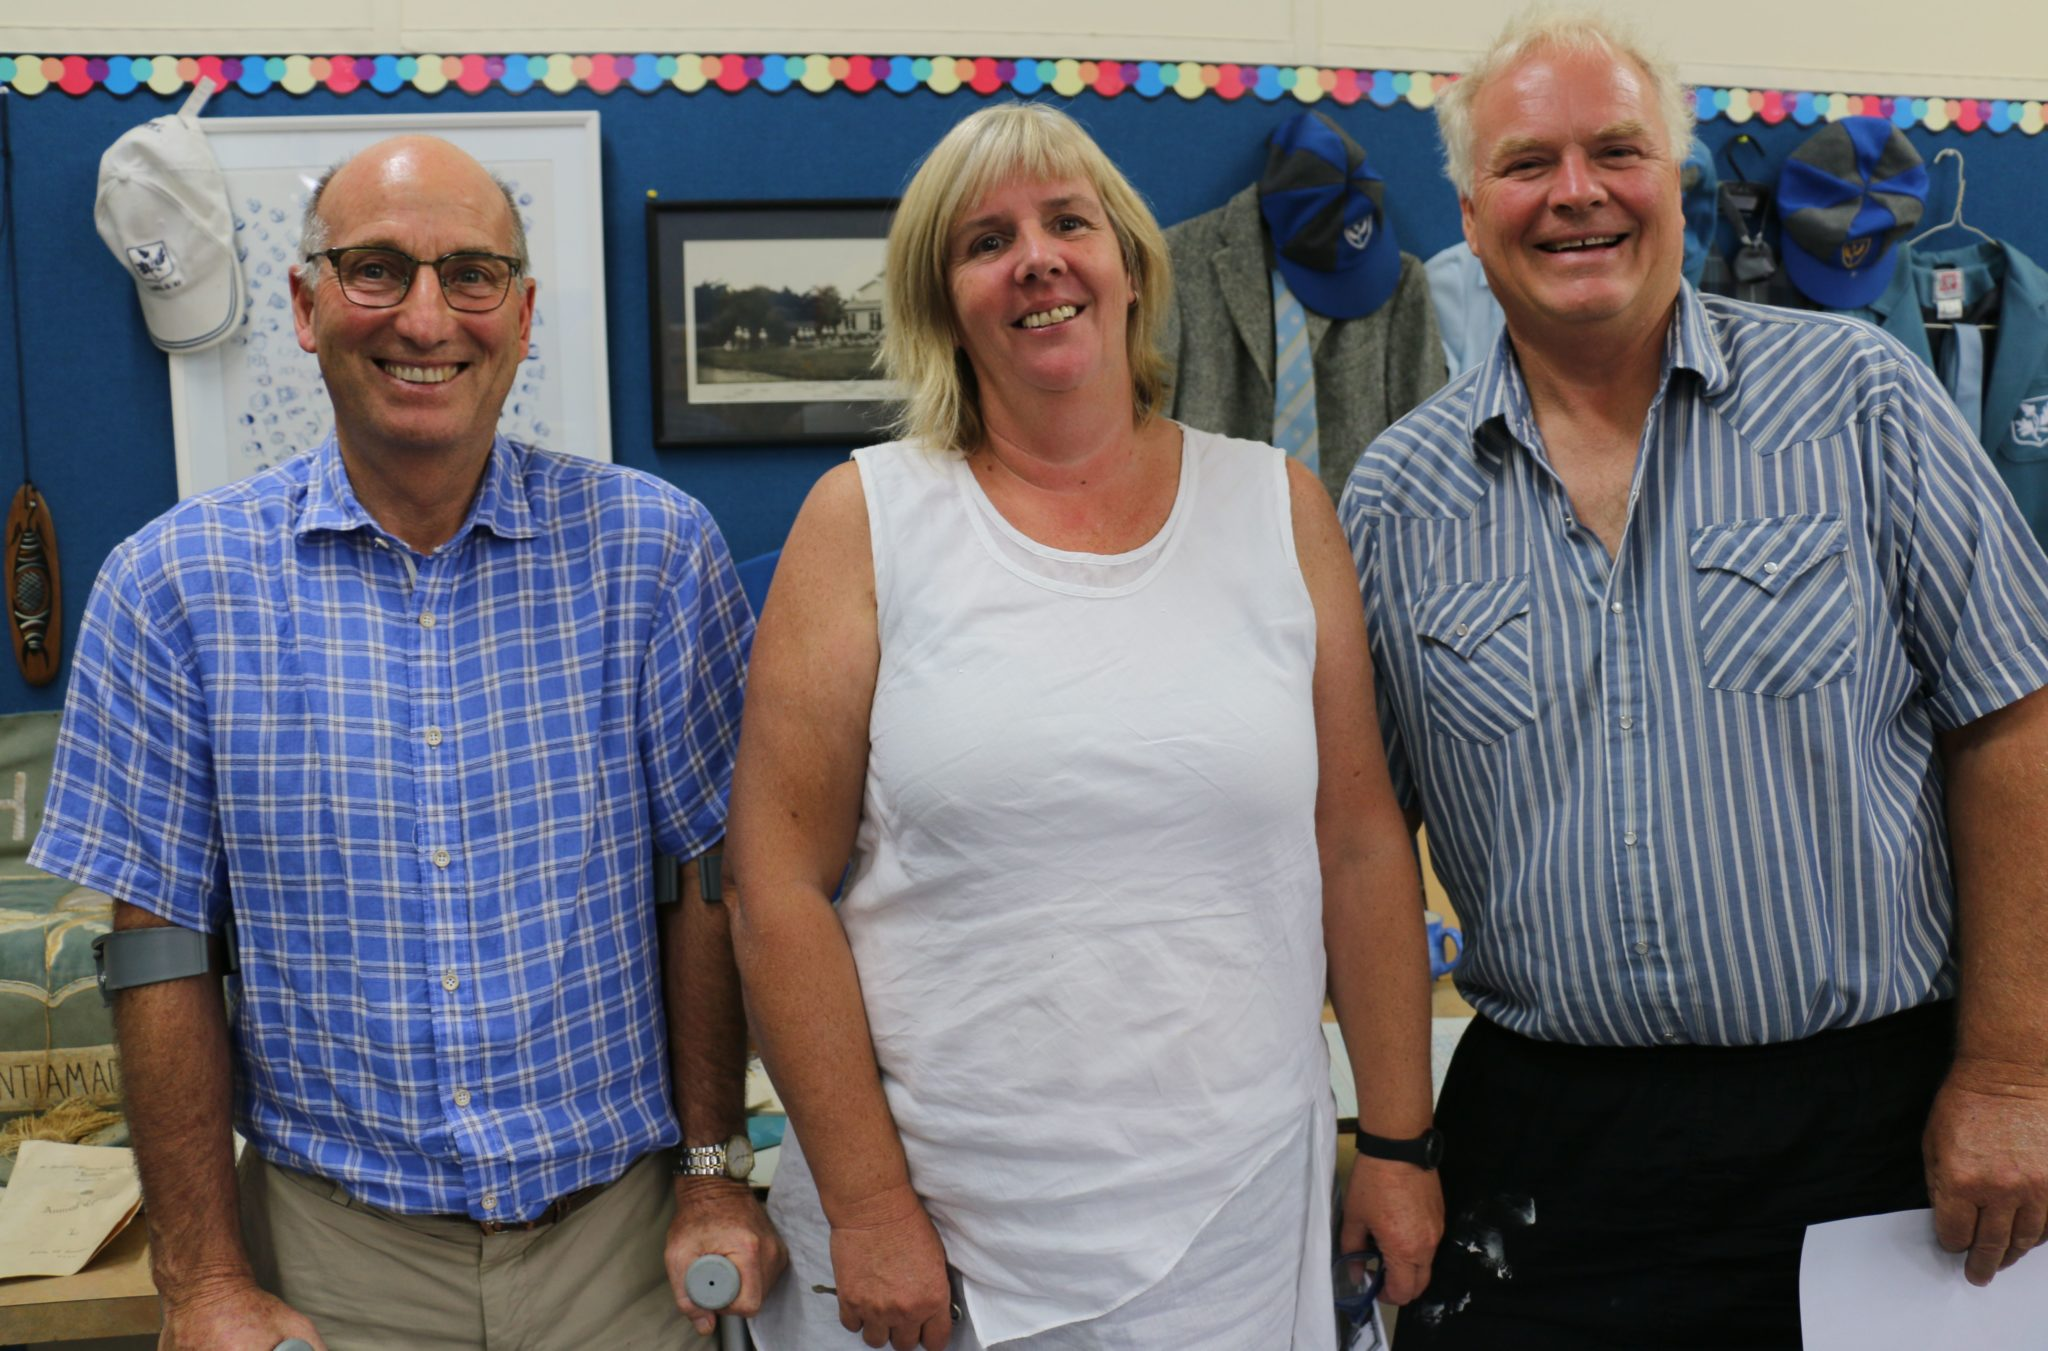 Hadlow principal Michael Mercer, with ex-pupils, Andrina Goodwin and John Murphy, who along with their 1971 classmates rallied to have the name of New Zealand changed to Aotearoa. — Photograph: Hayley Gastmeier/Wairarapa Times-Age.